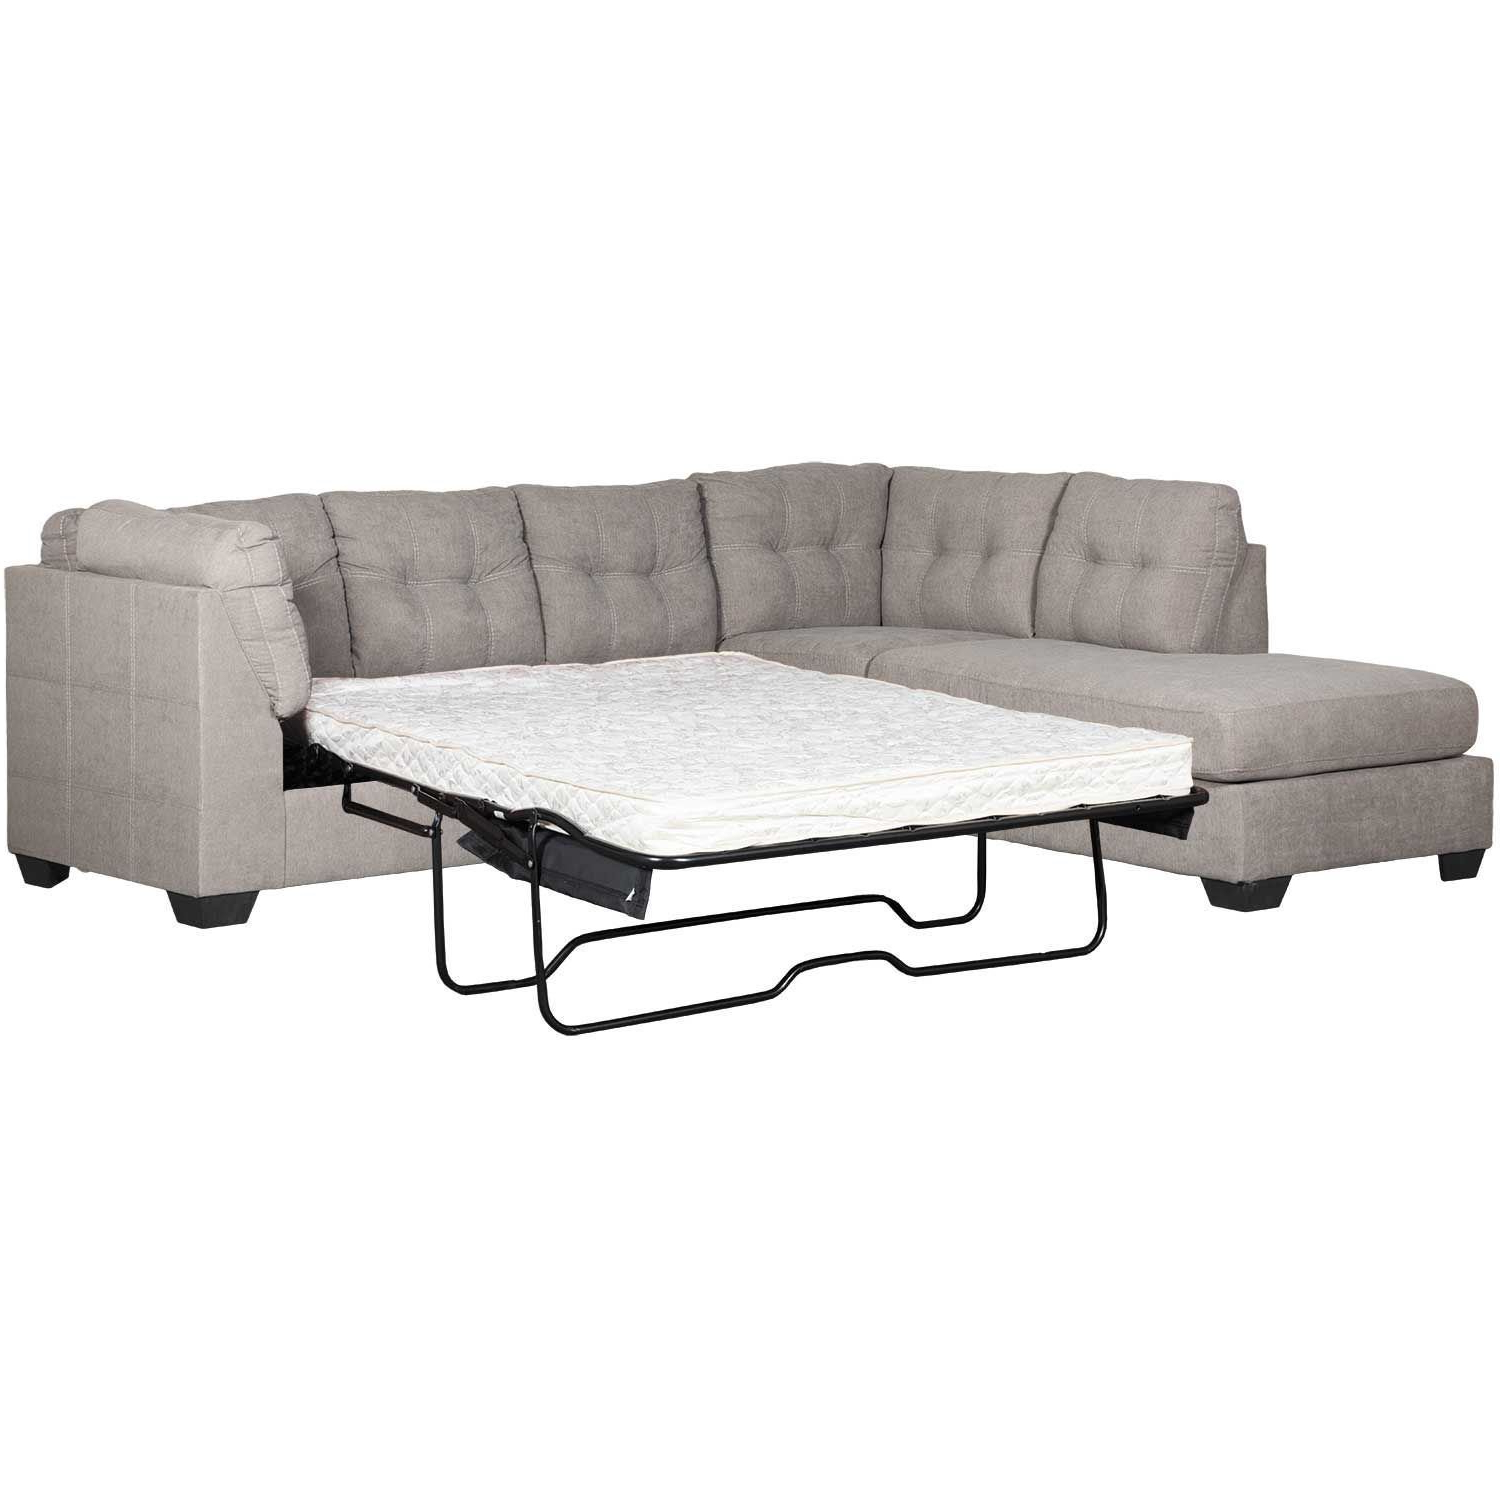 Trendy Sleeper Sectional (View 20 of 20)